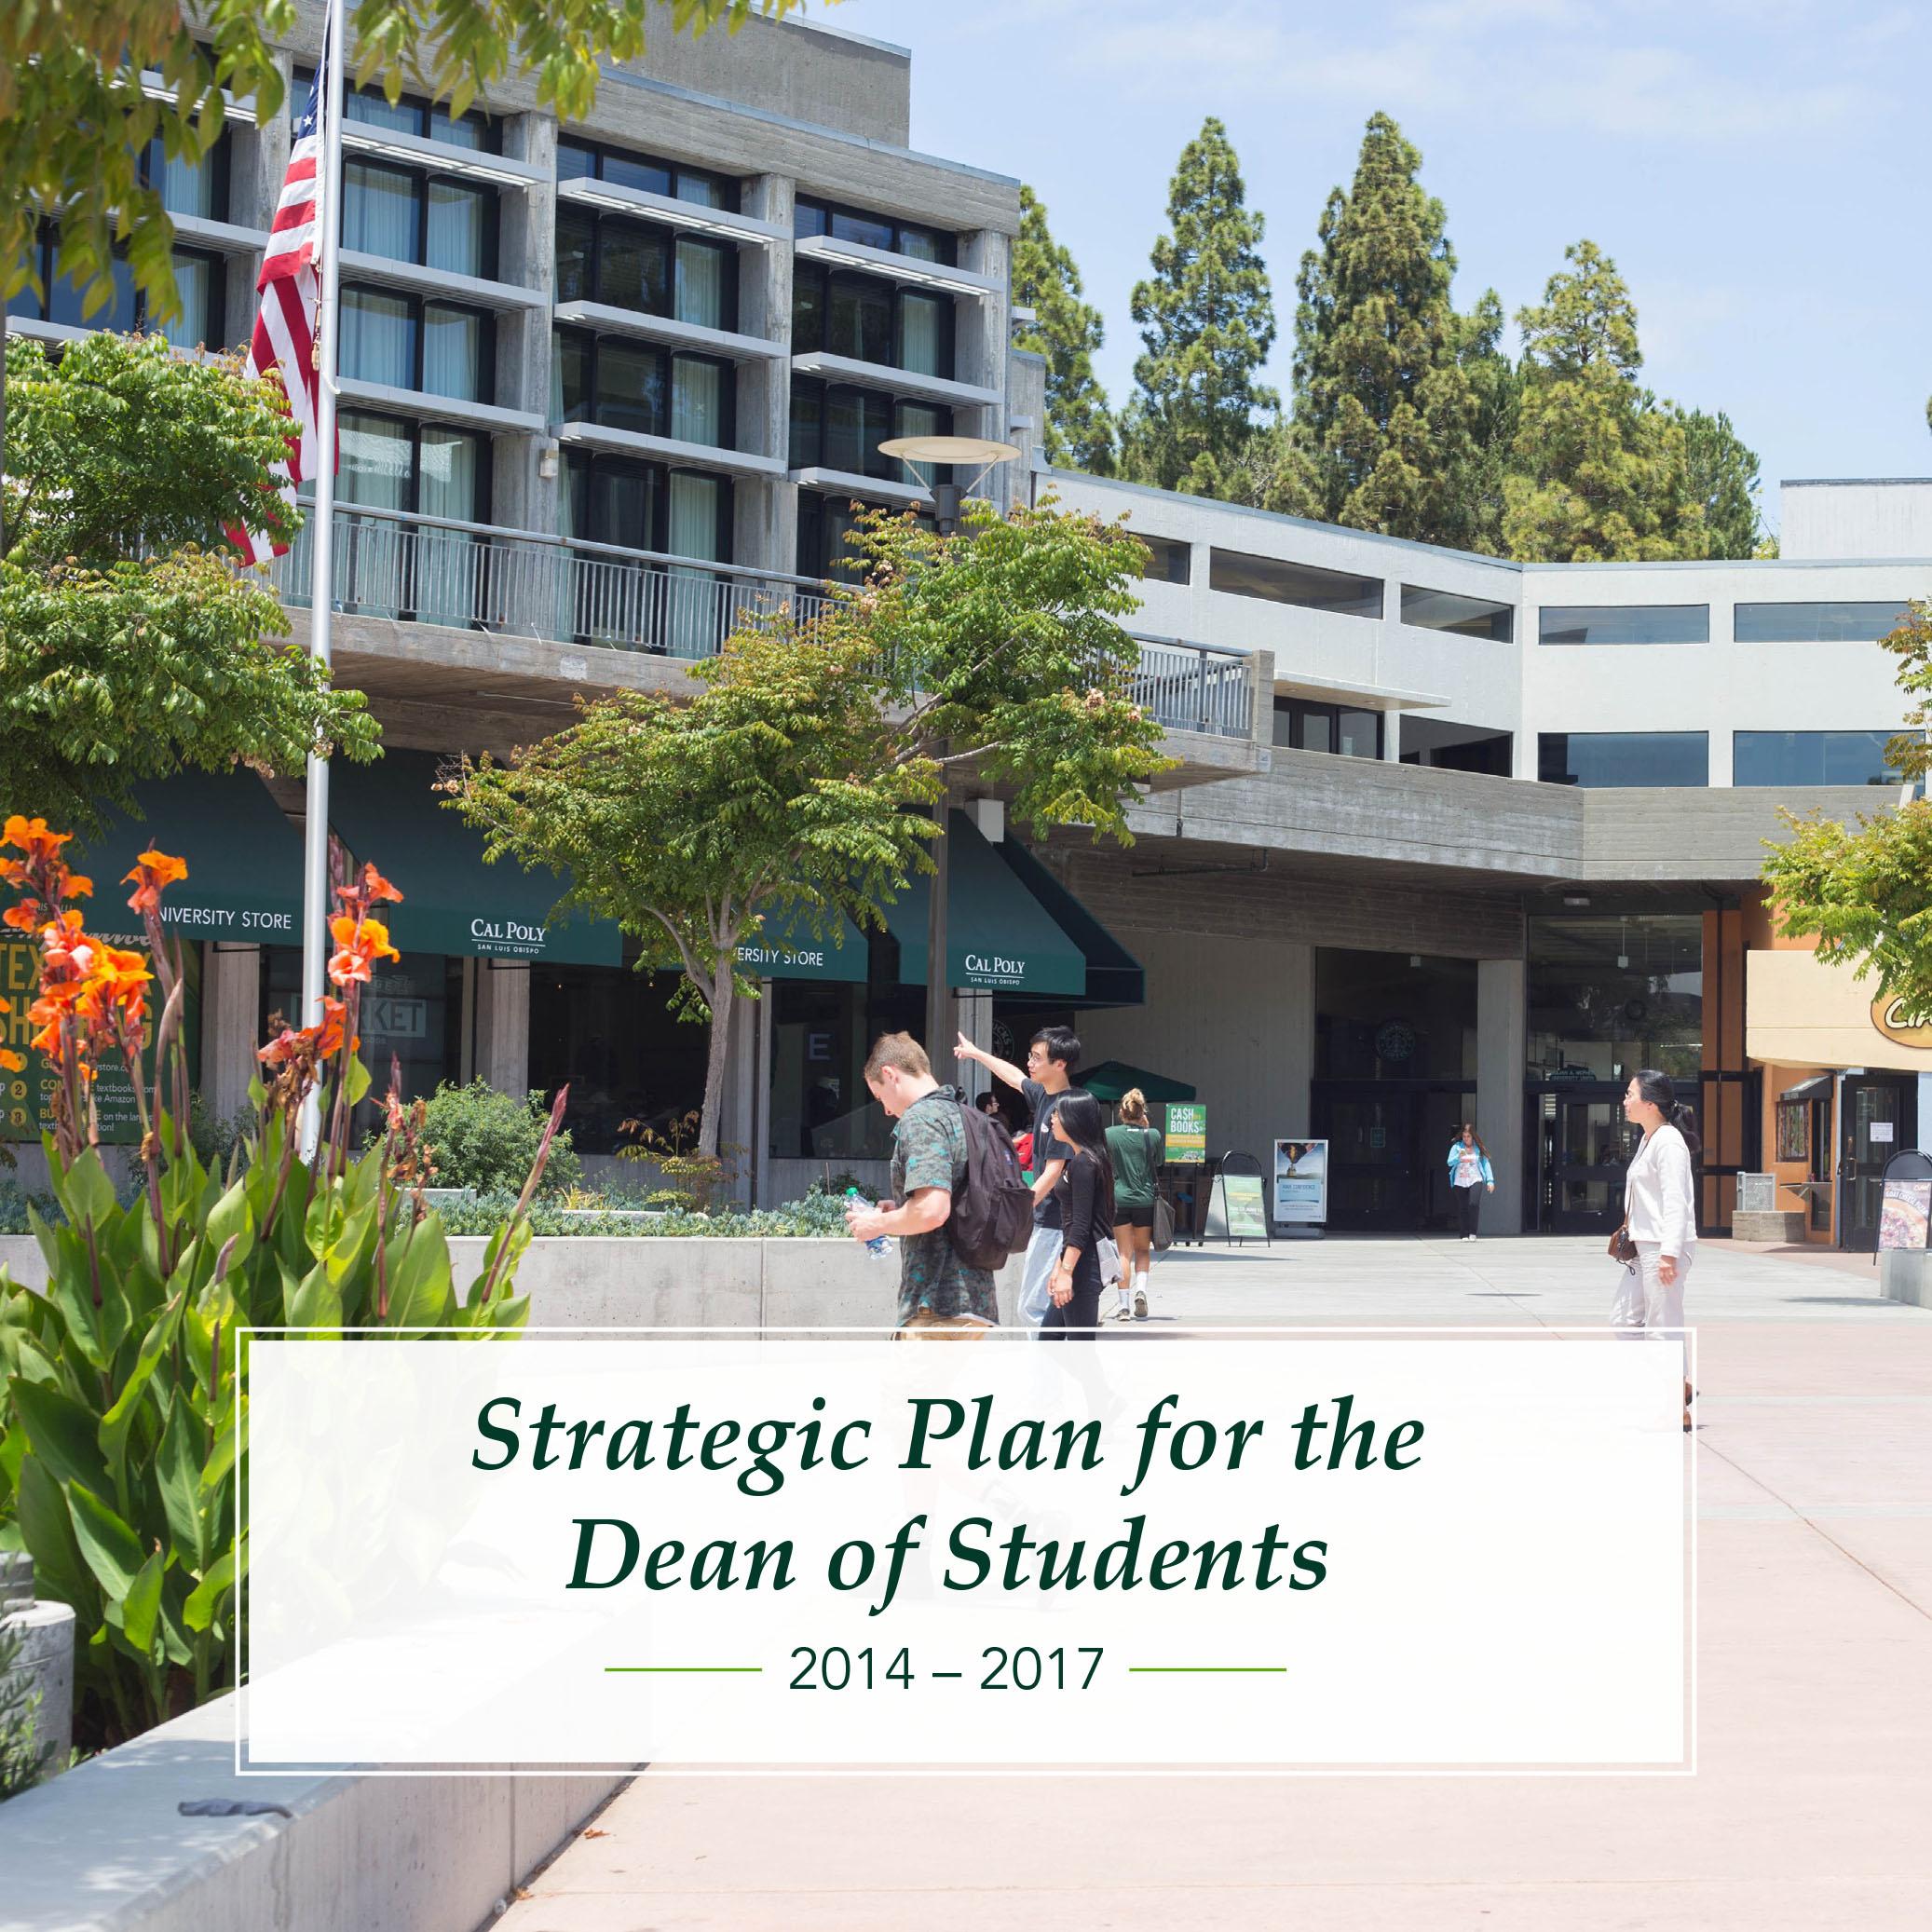 Dean of Students Strategic Plan Link